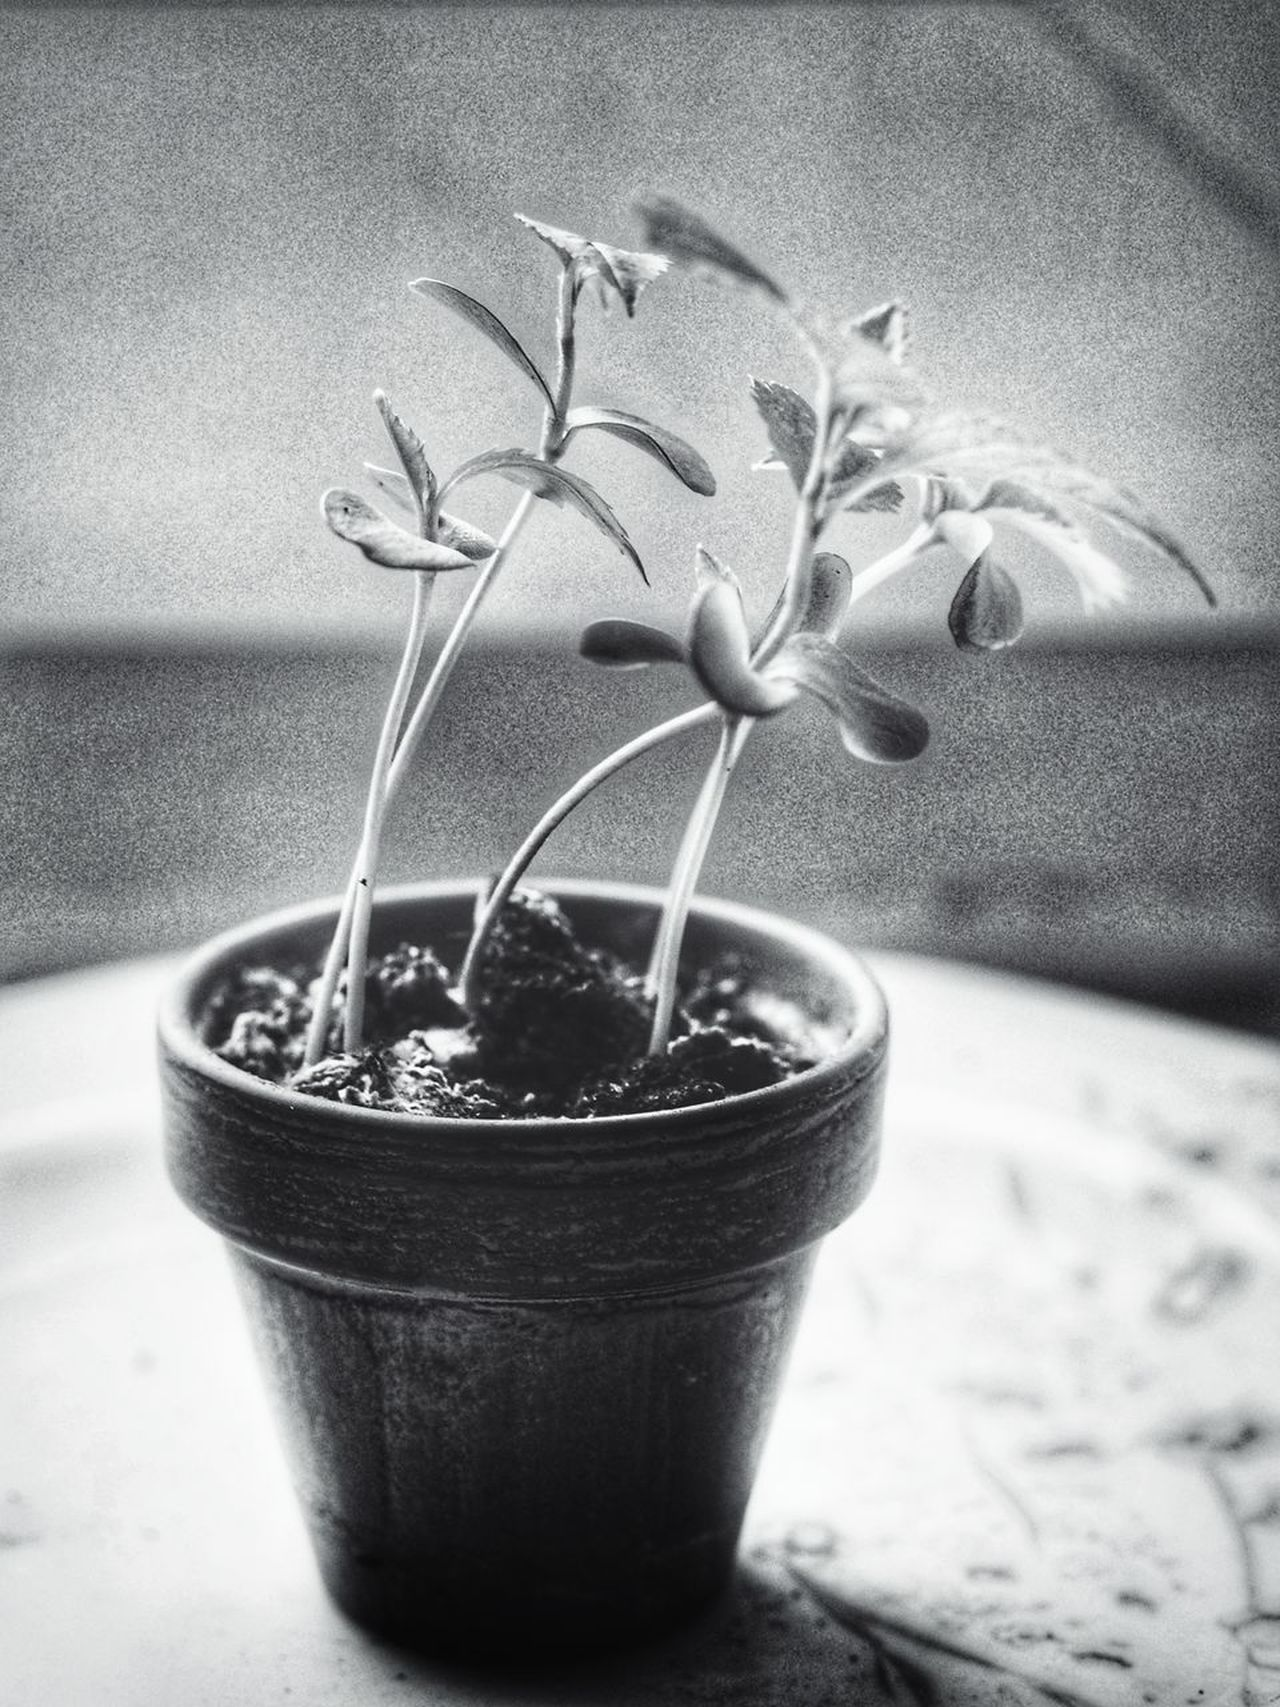 My little love - MAinLoveWithCreation MAinLoveWithFreedom MAinLoveWithMemories MAinLoveWithYou and Little Love in Little Pot Garden Pot Little Tree Apple Tree Growing Growing Up Growing Stronger Growth Monochrome Mono Monochromatic Monochrome Photography Black And White Bnw Bnw_collection Bnw_captures Bnw_life New Life How I See The World VanessArt - 19.03.2017 - #BadLippspringe Long Goodbye